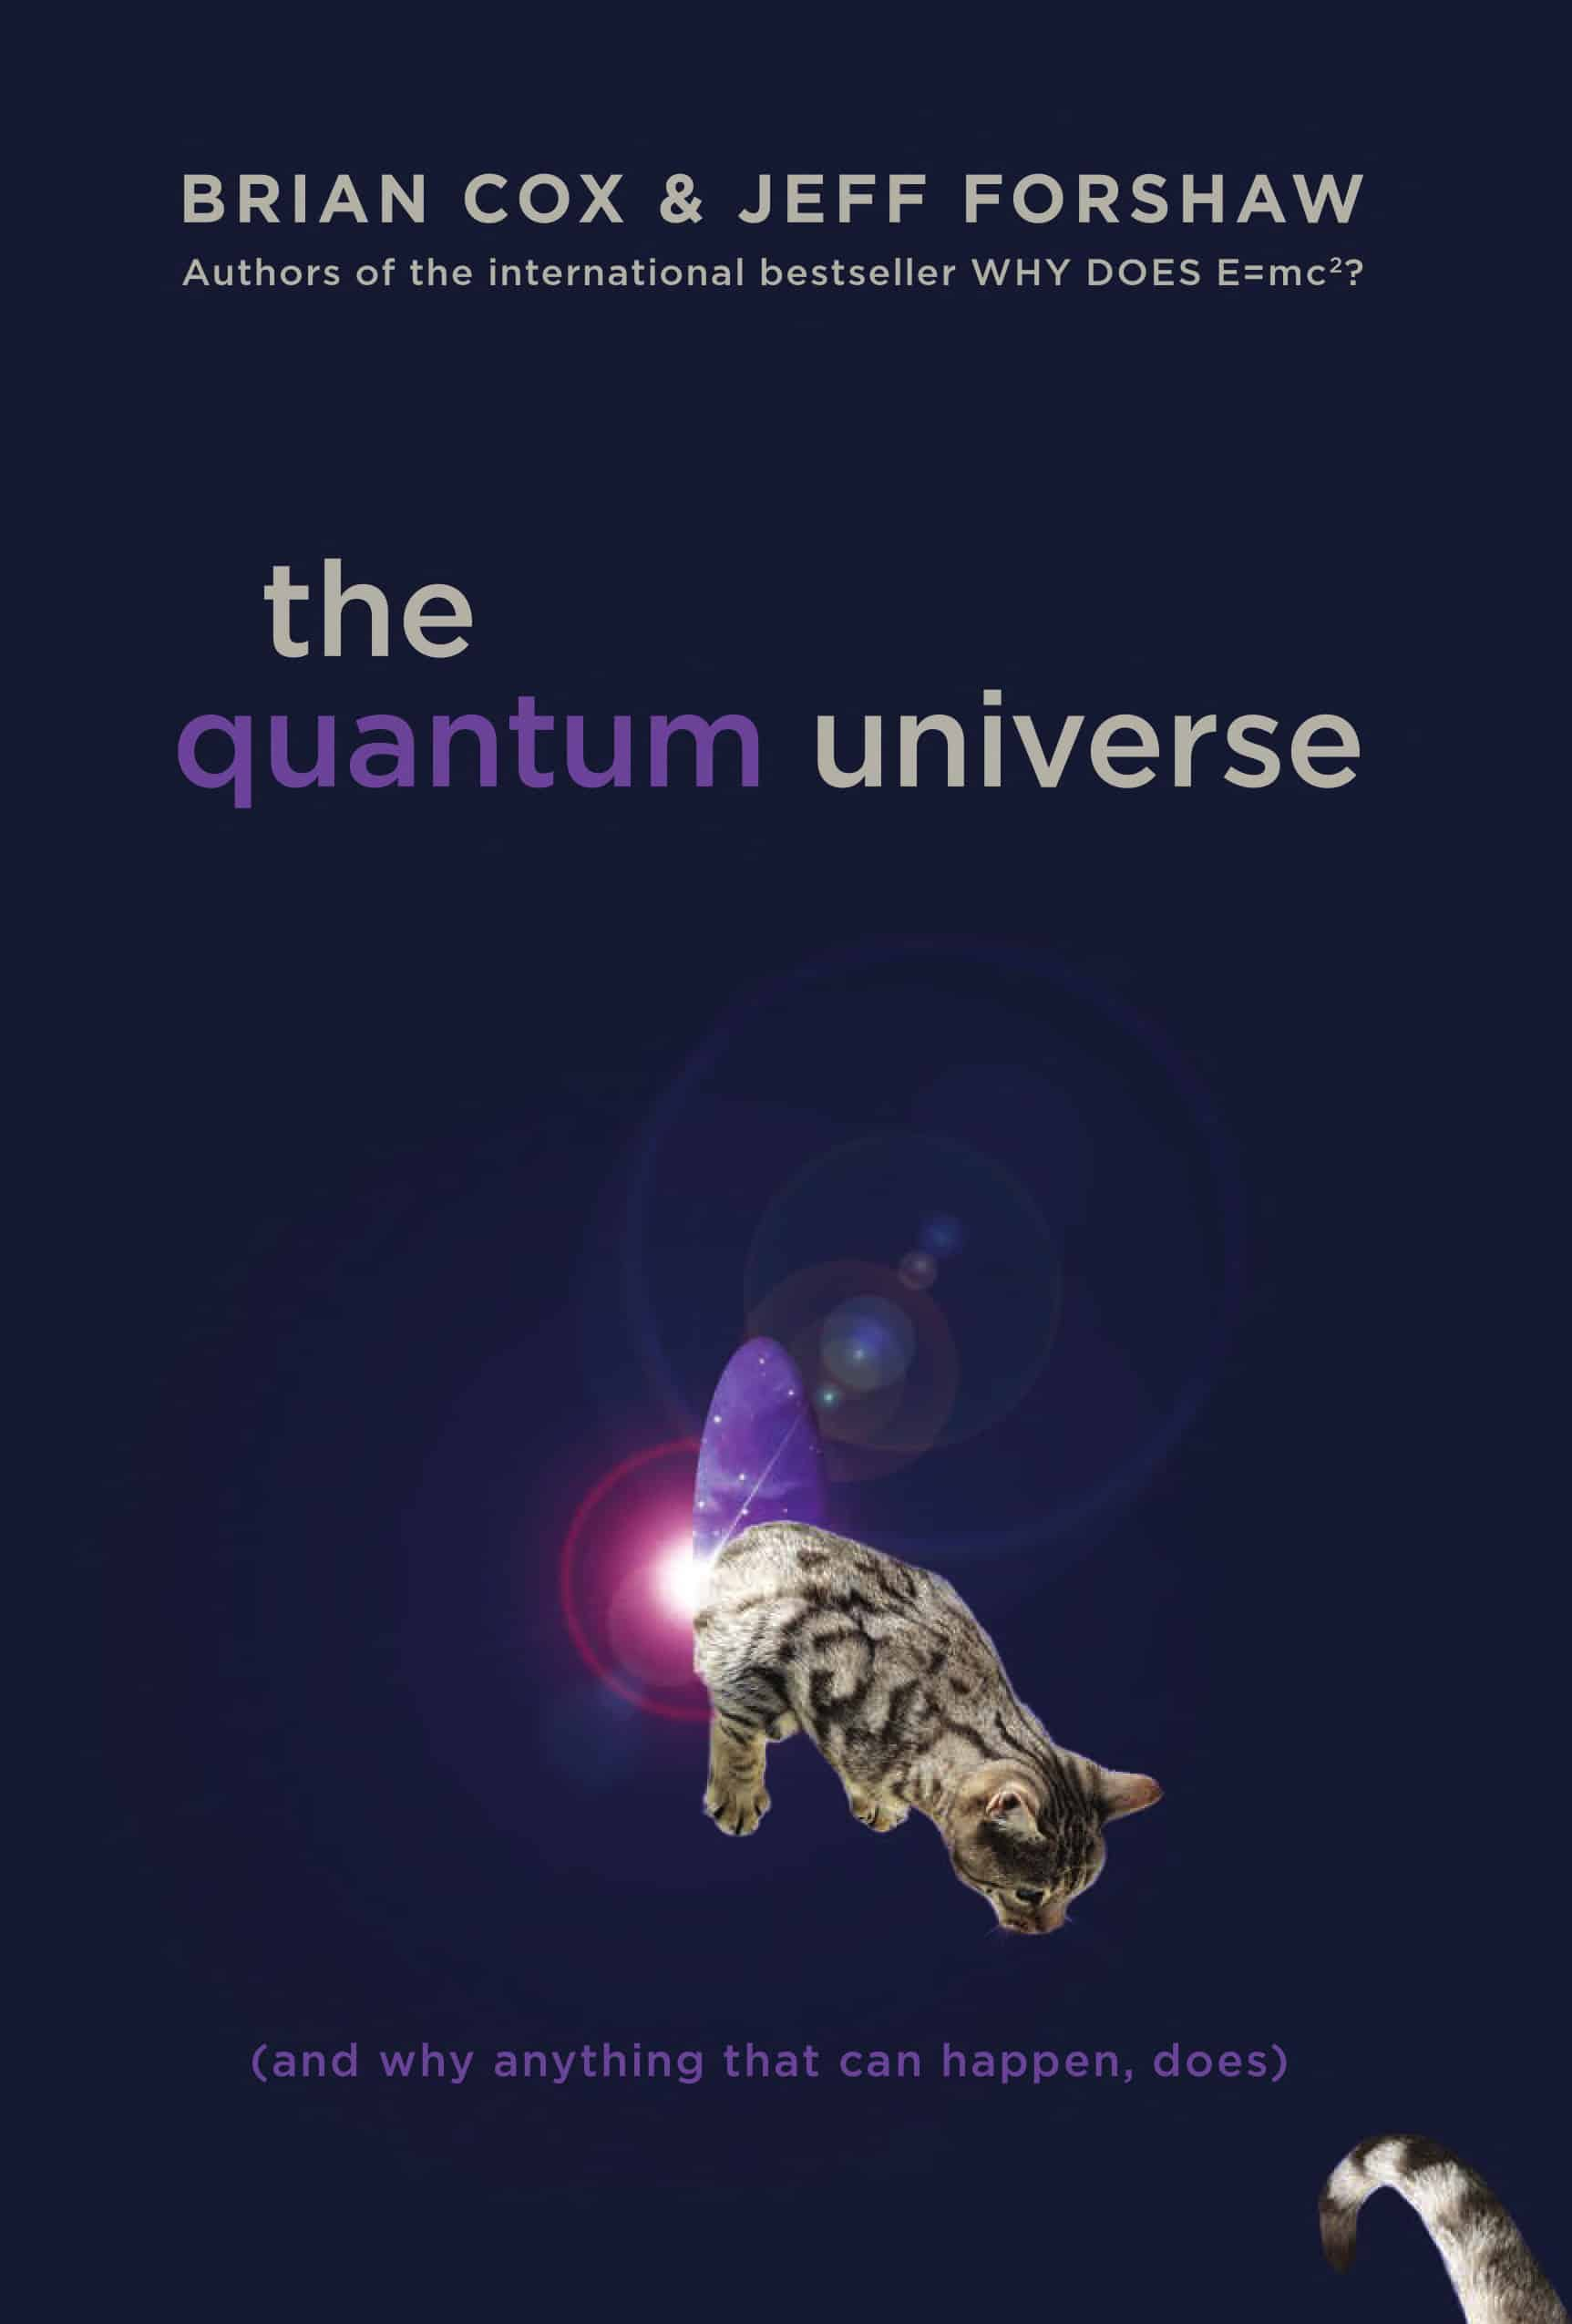 The Quantum Universe - The Quantum Universe: And Why Anything That Can Happen, Does